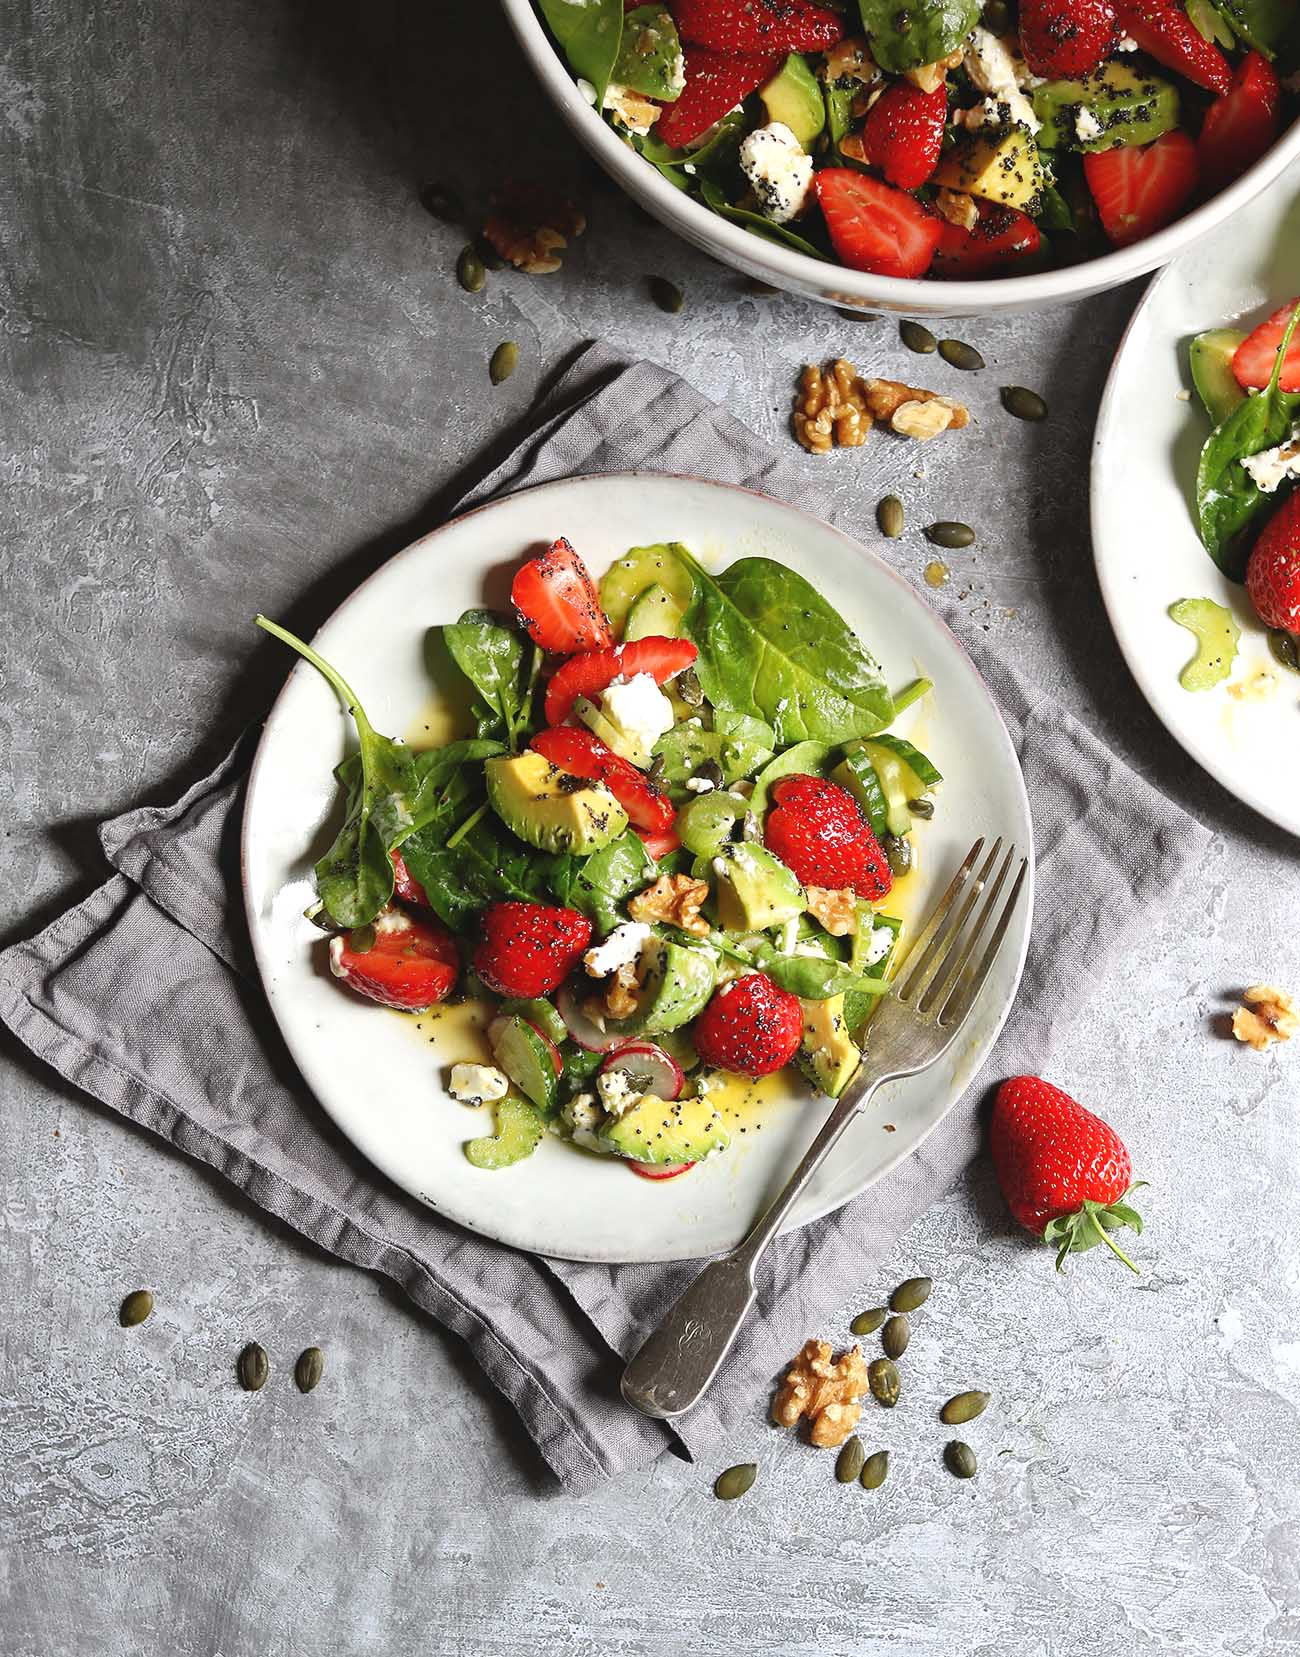 A plate of spinach, strawberry's, walnut and avocado in a poppy seed dressing